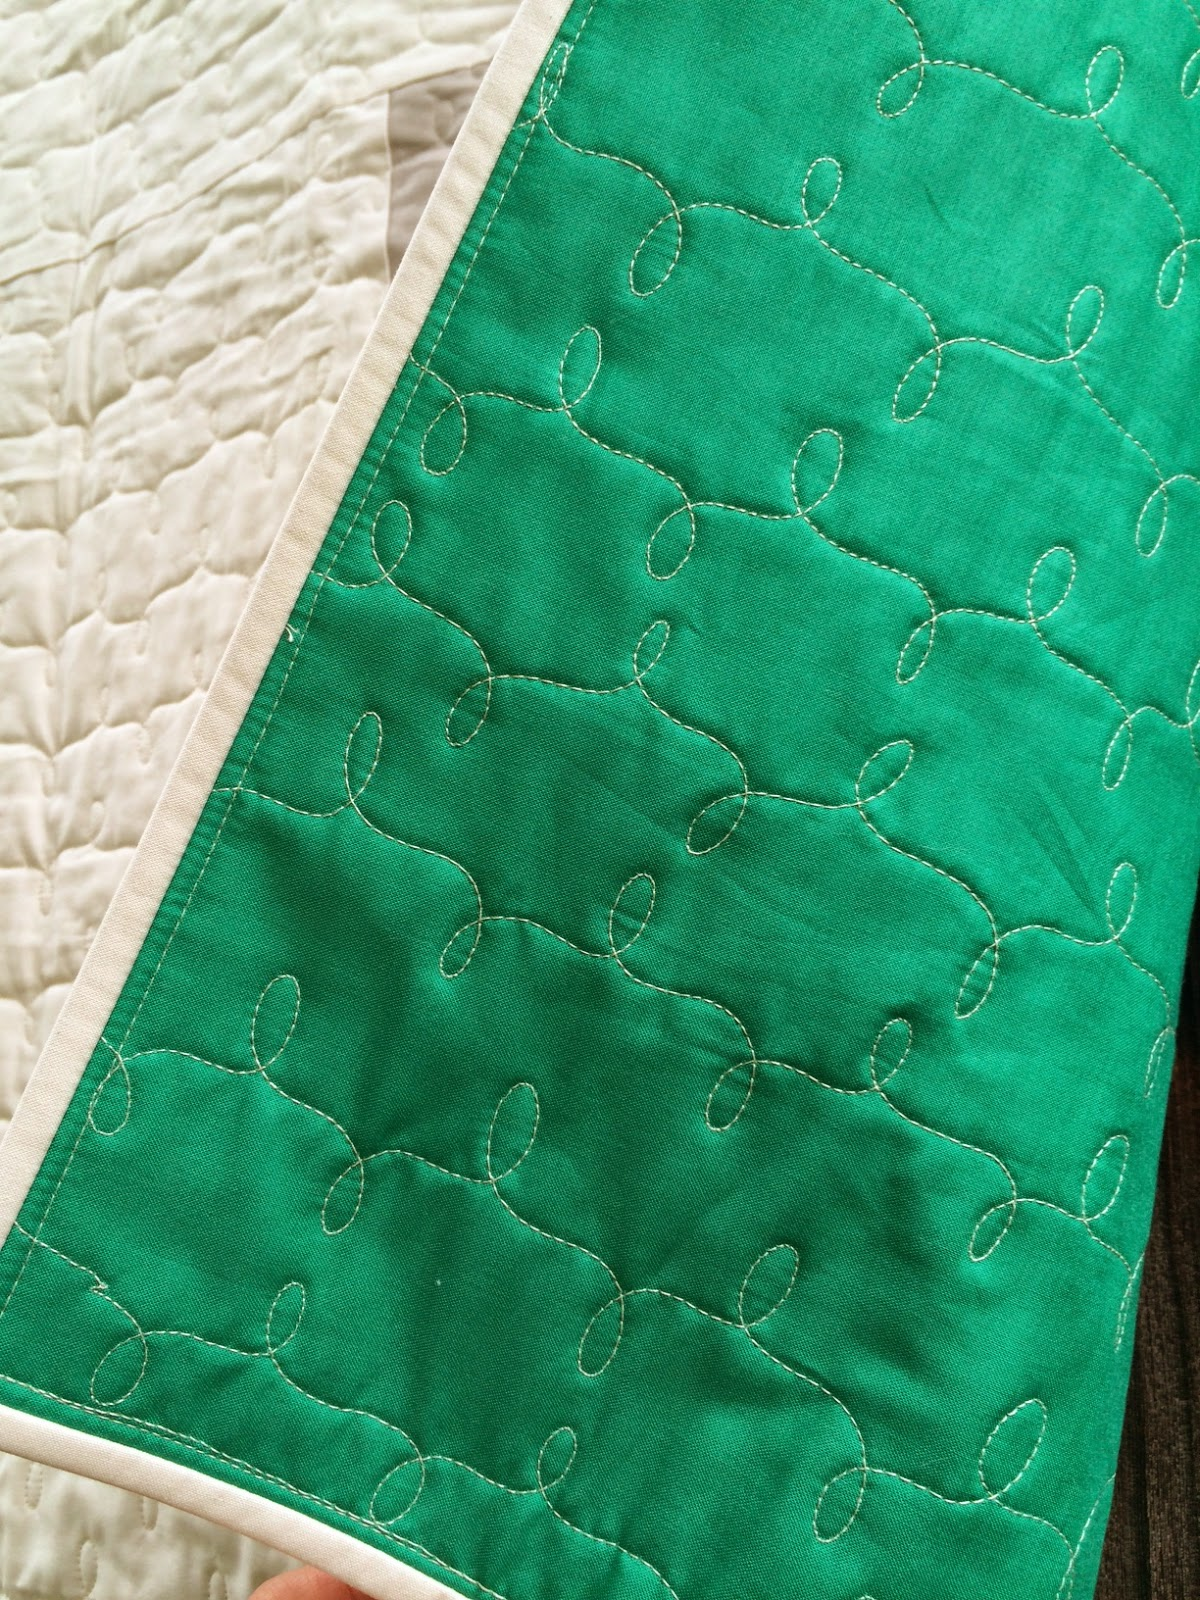 of textures aquamarine stock quilt counterpane up green photo close bedspread background sea